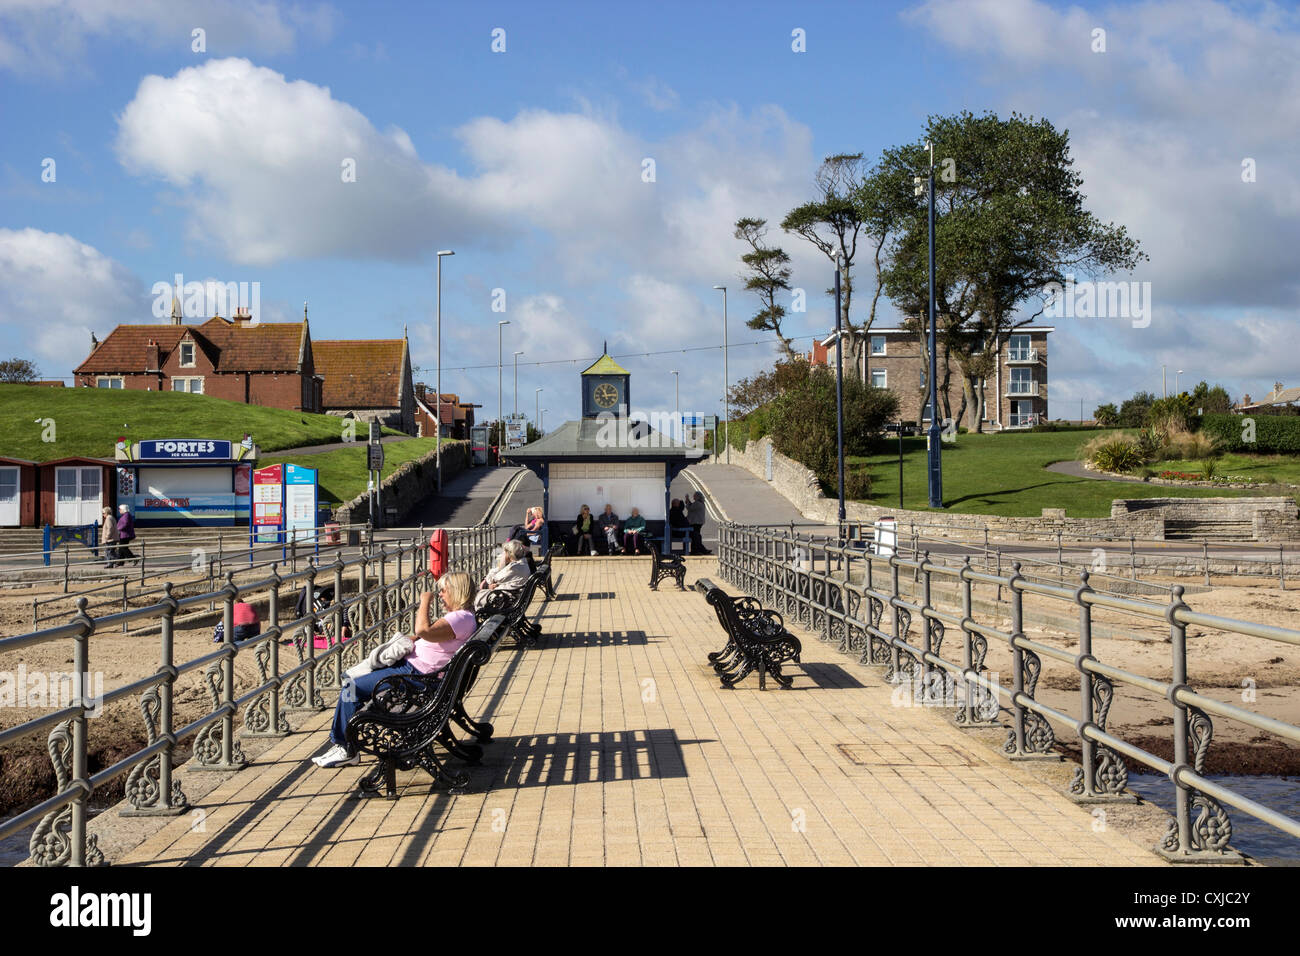 The Banjo Jetty, Swanage  Promenade, Dorset, UK. Europe - Stock Image